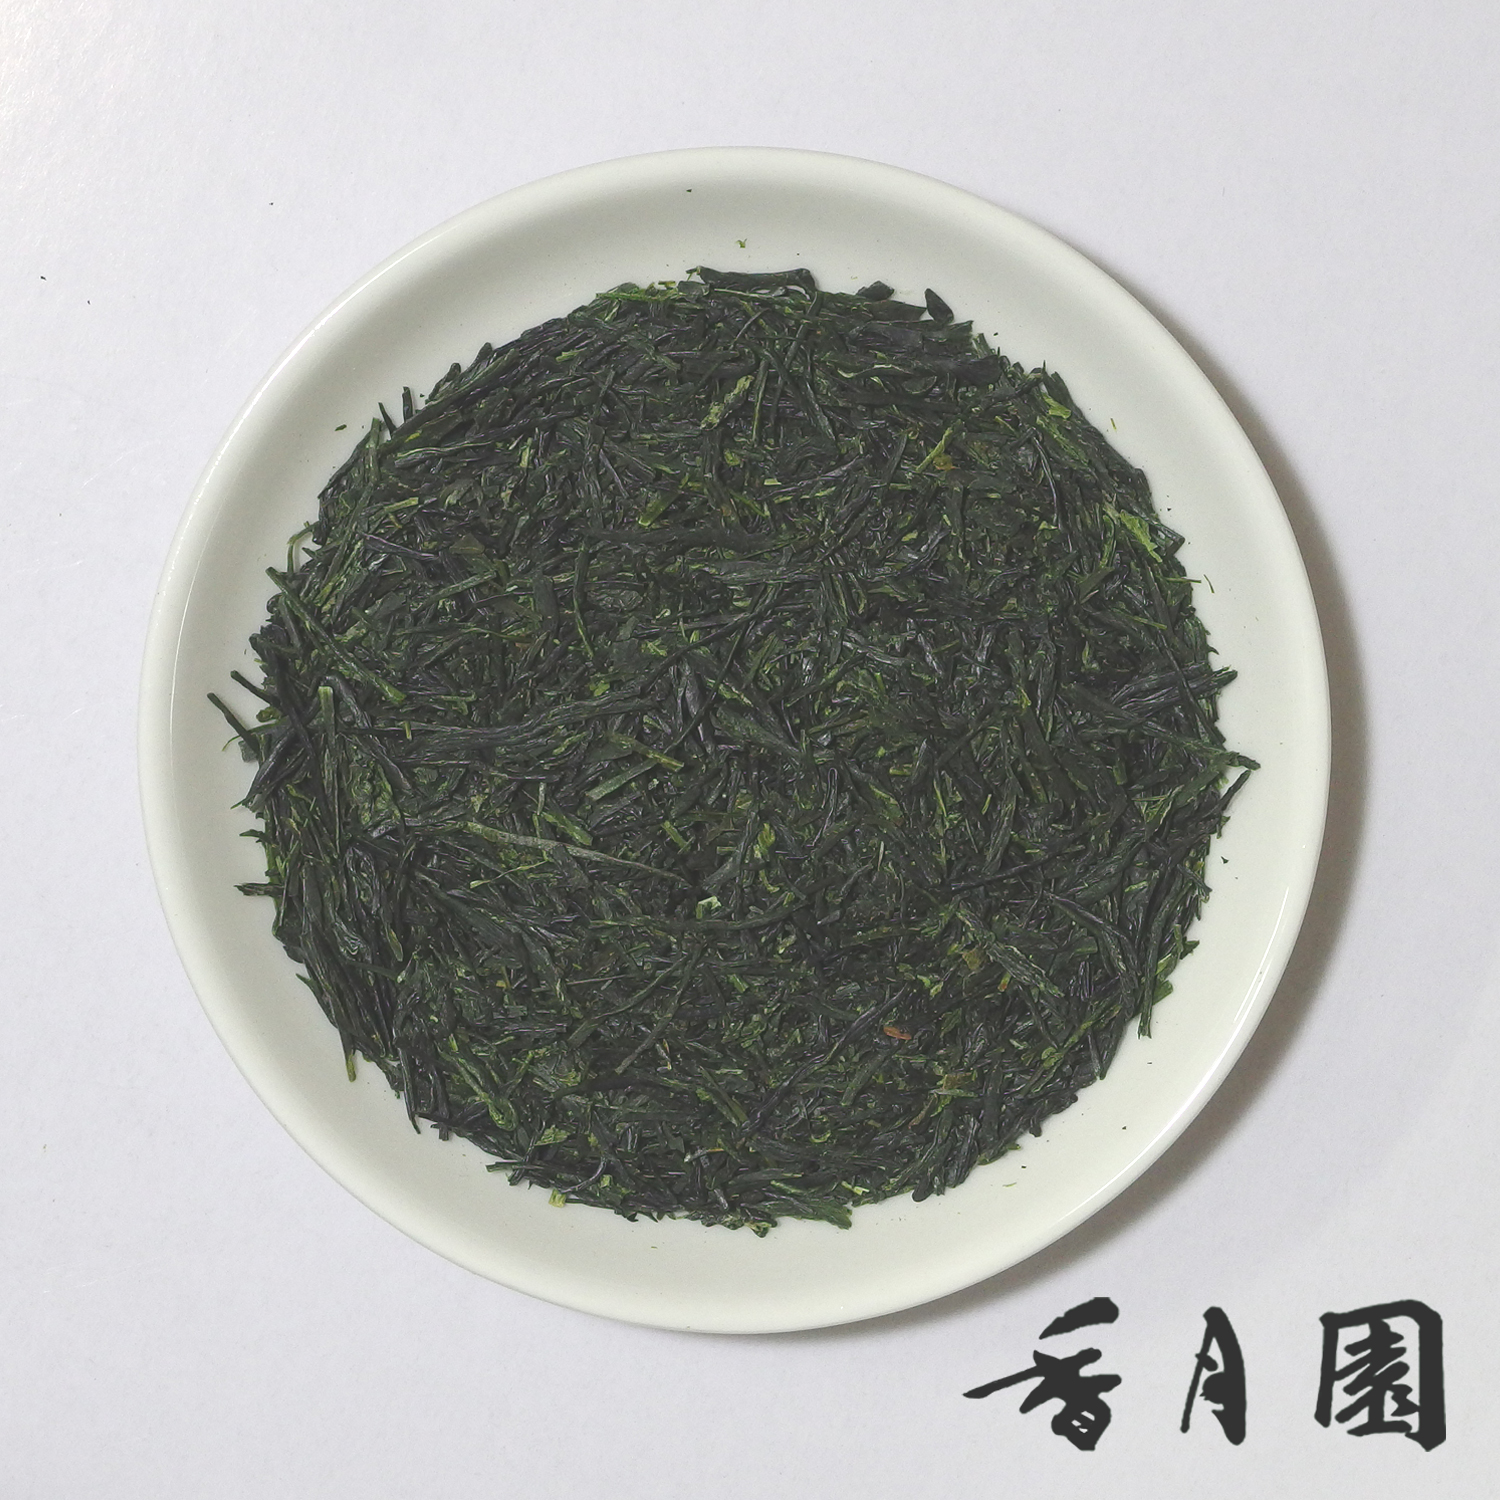 Gyokuro Best Organic Green Tea Brands Organic With Best Price